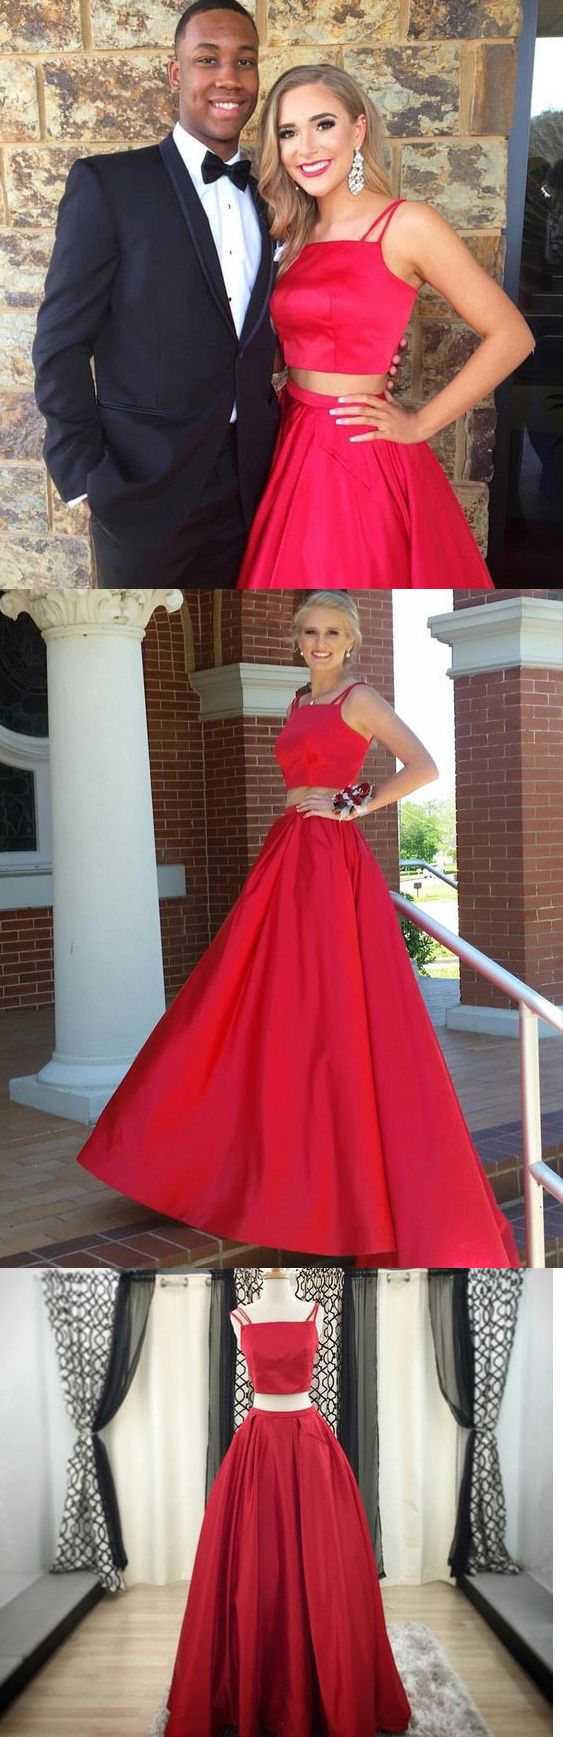 07425804866 Simple Two Piece Prom Dress